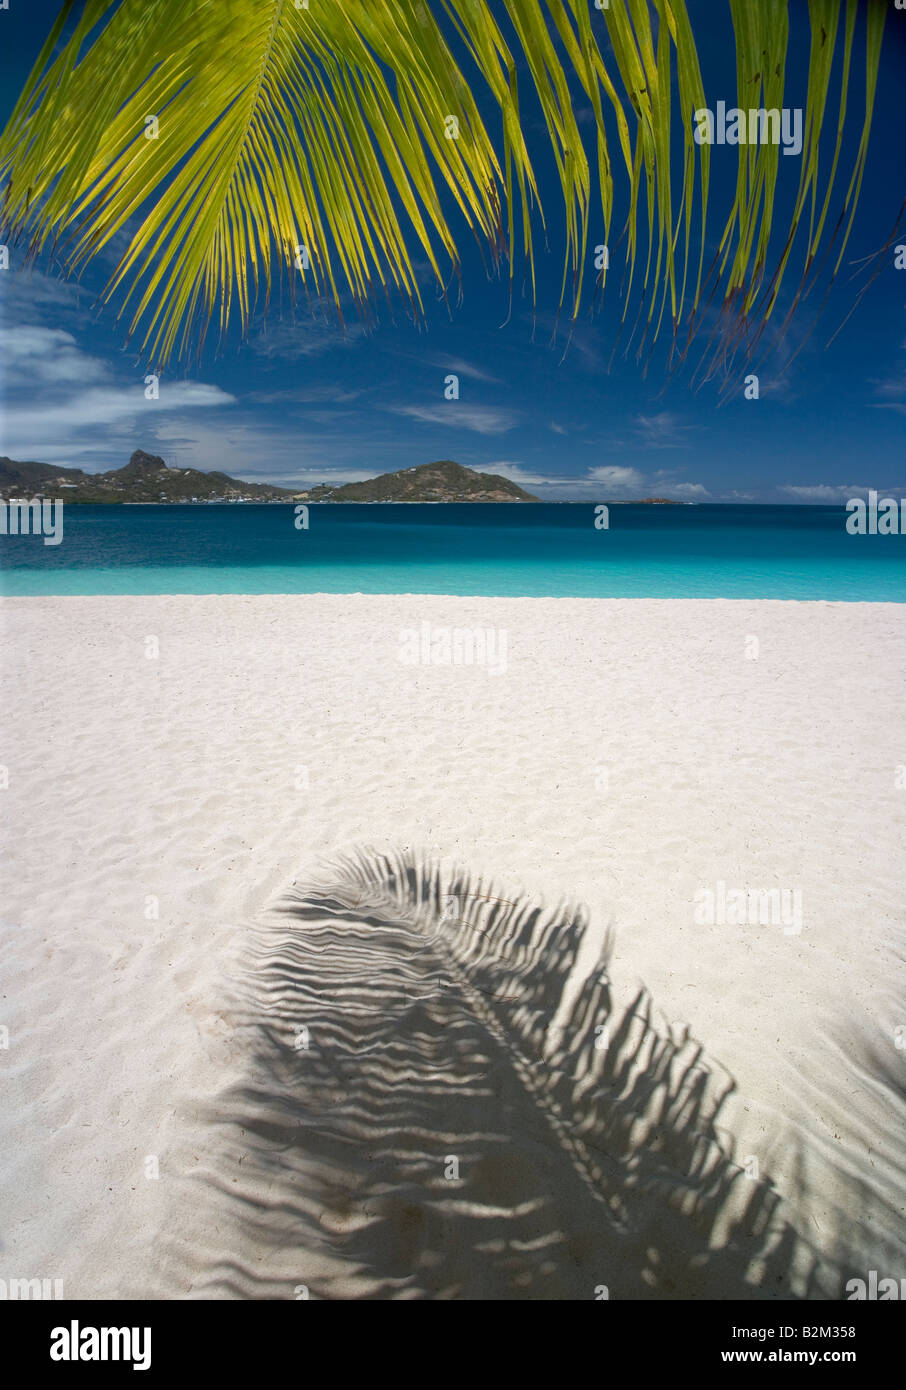 A palm frond and its shadow on a Caribbean beach this one on Palm Island St Vincent - Stock Image